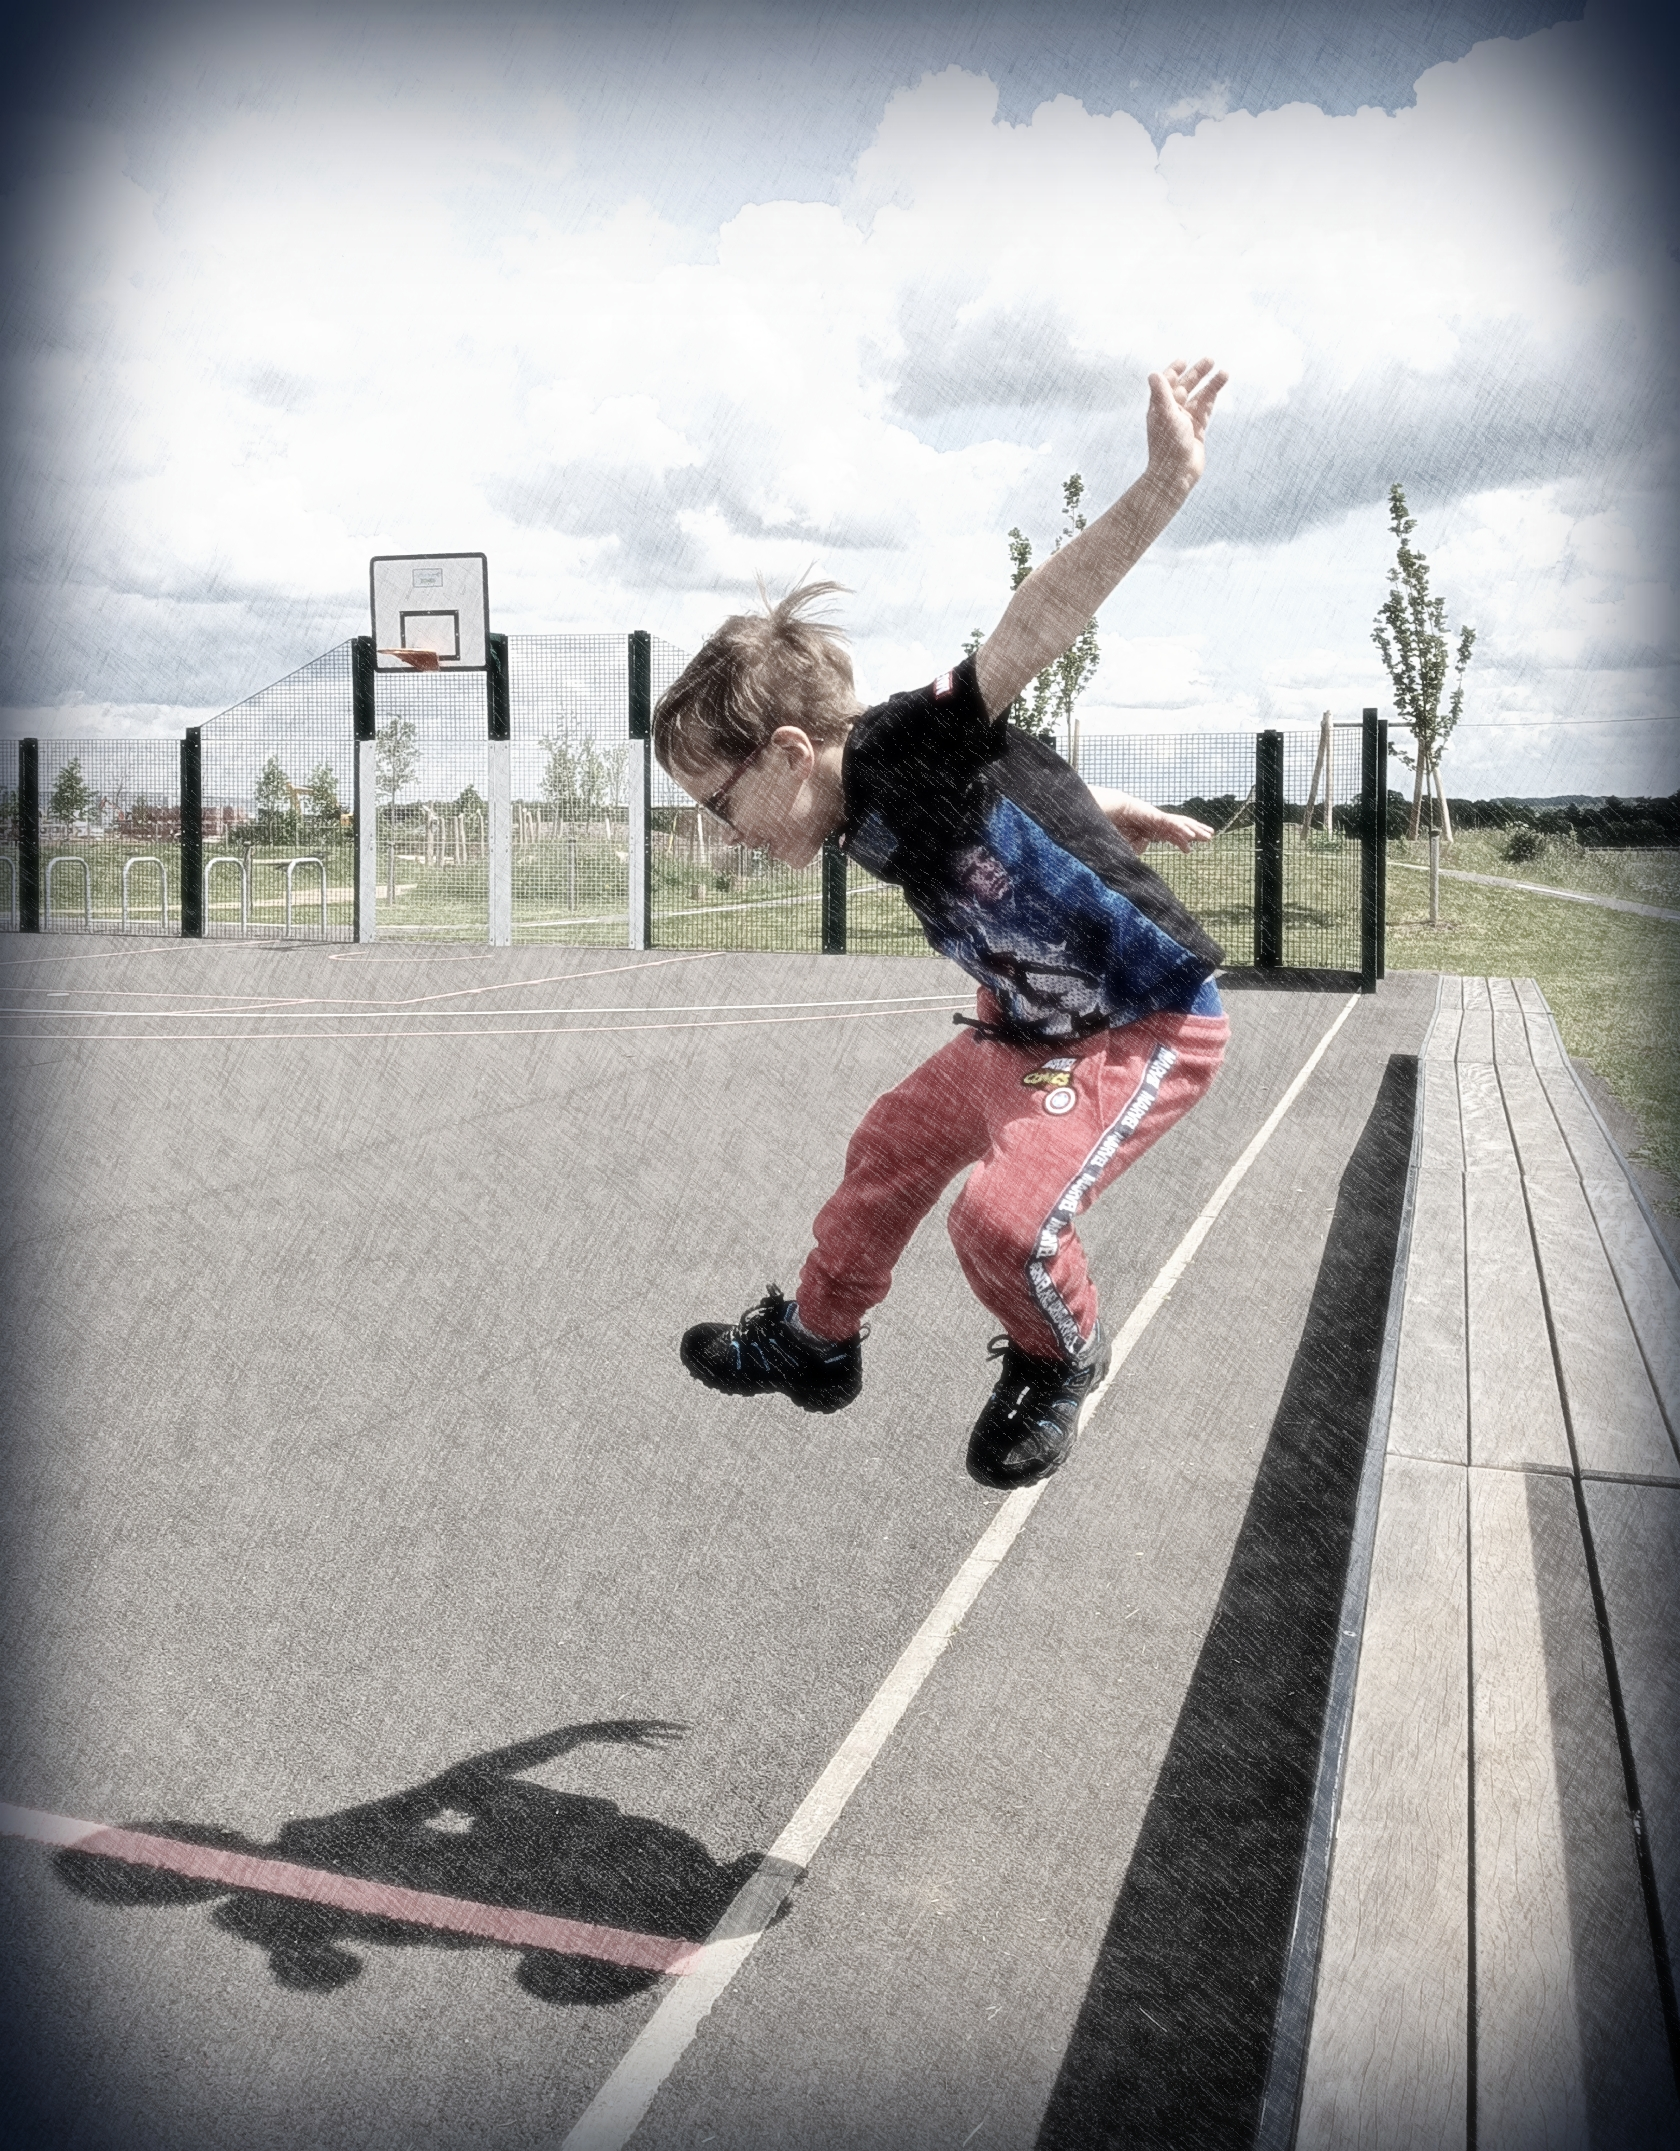 Young child in mid-air jump at a skatepark with shadow on the ground